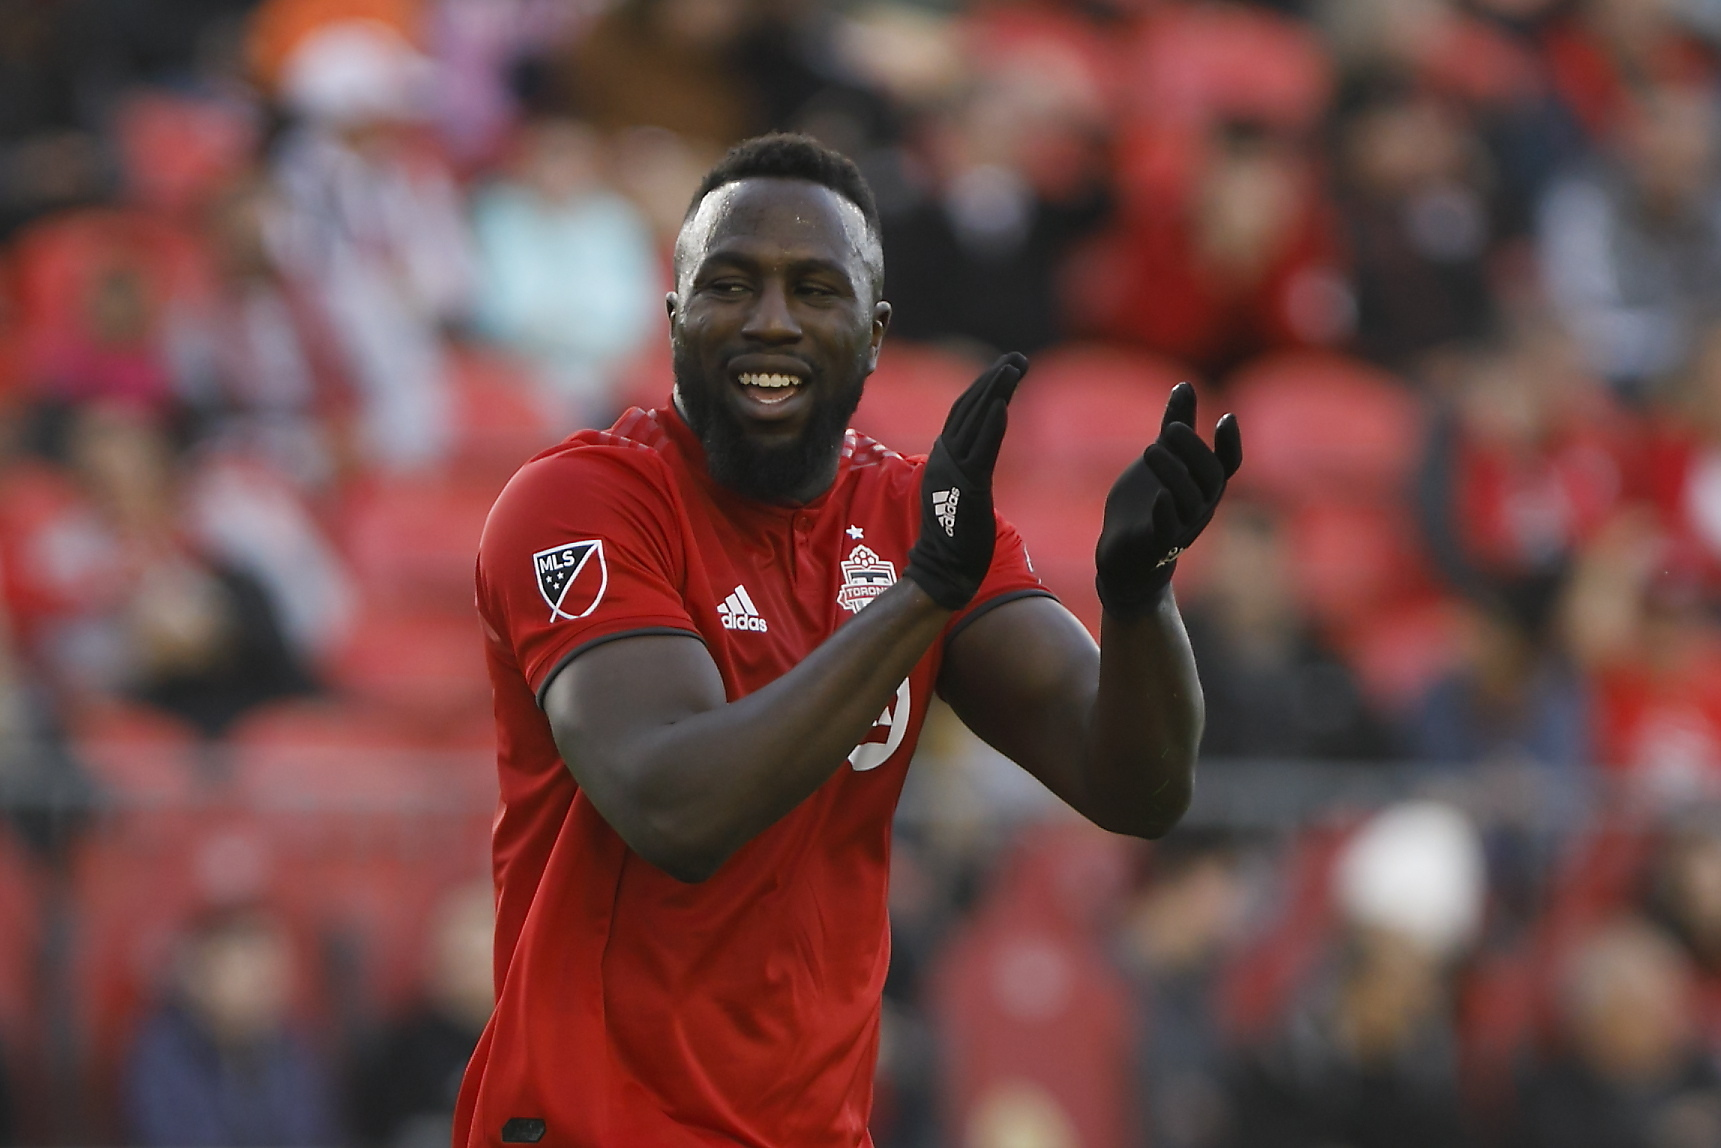 Altidore hurt again, will miss US Nations League games